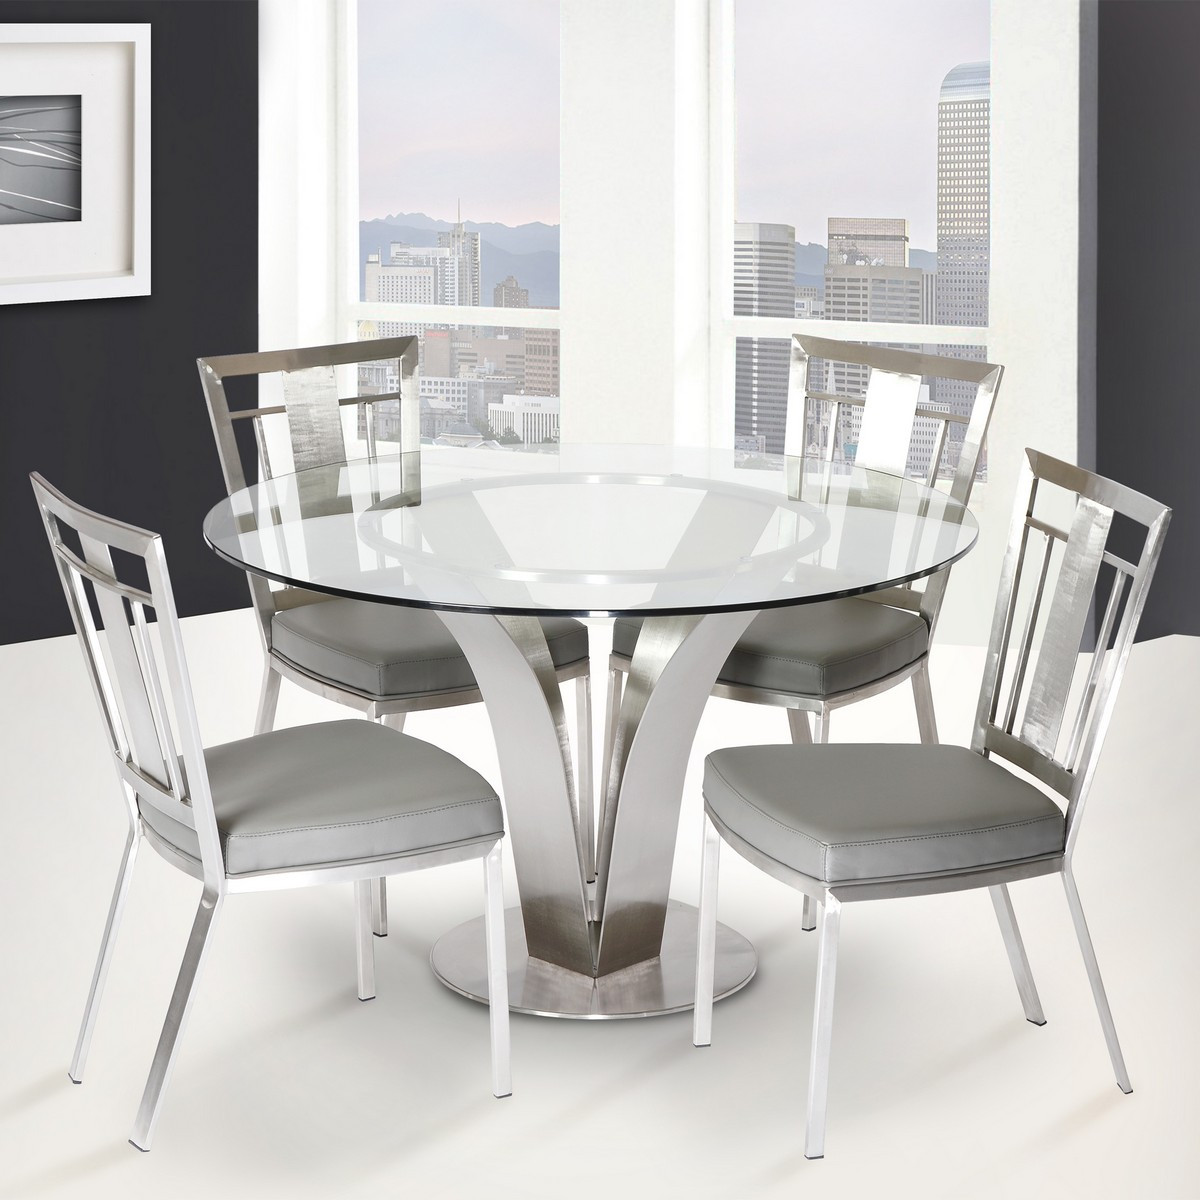 Best ideas about Stainless Steel Dining Table . Save or Pin Dining Chairs For Stainless Steel Table Top Stainless Now.